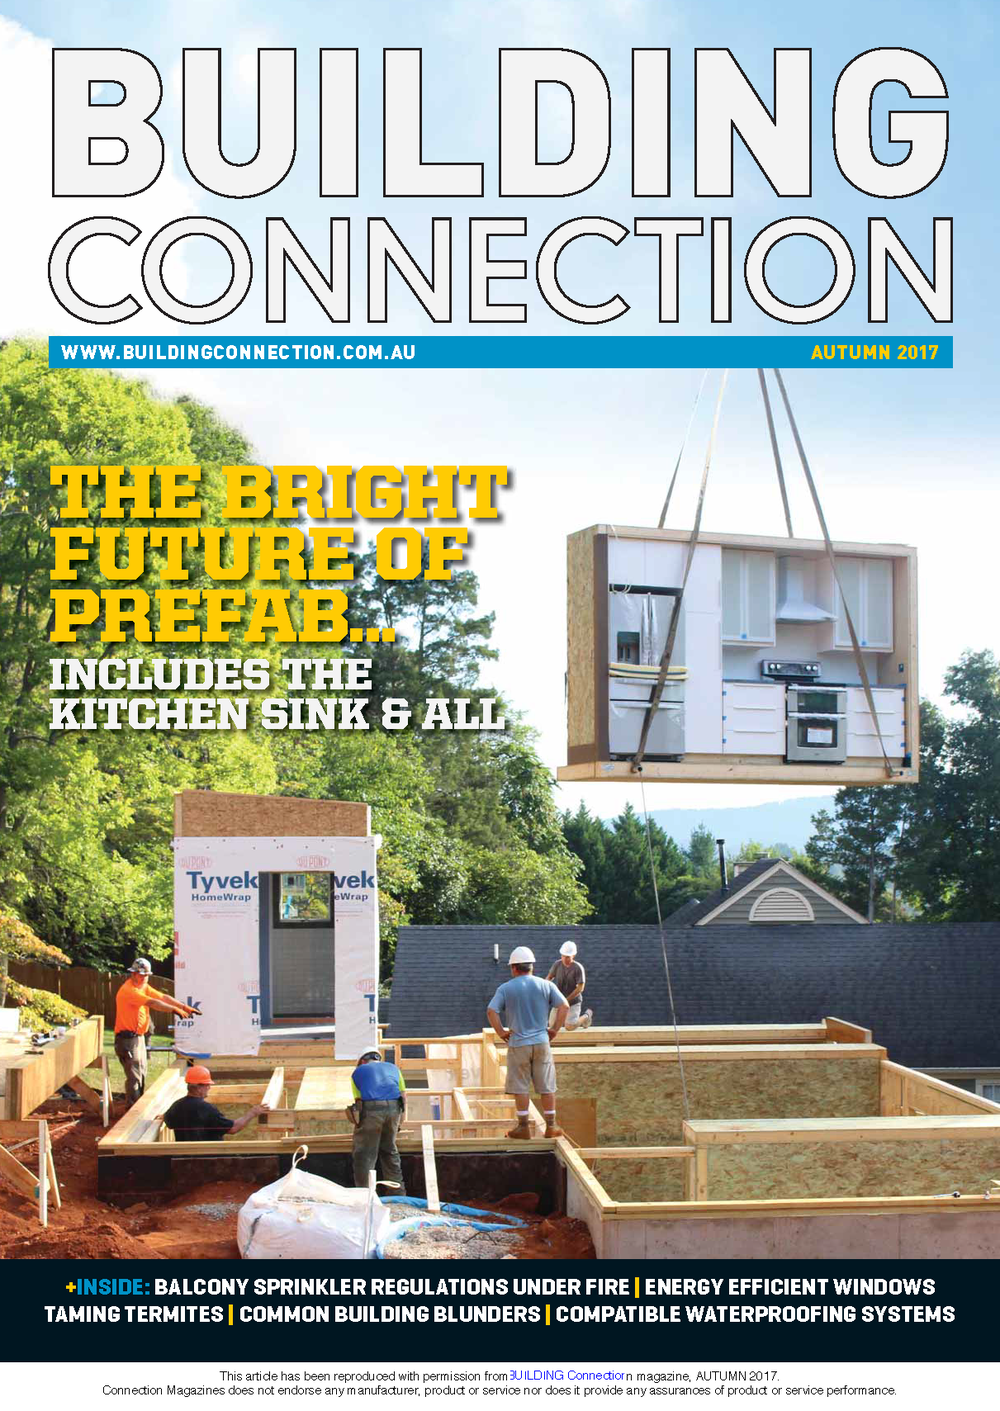 Conference Summary in the Autumn Edition of Building Connections